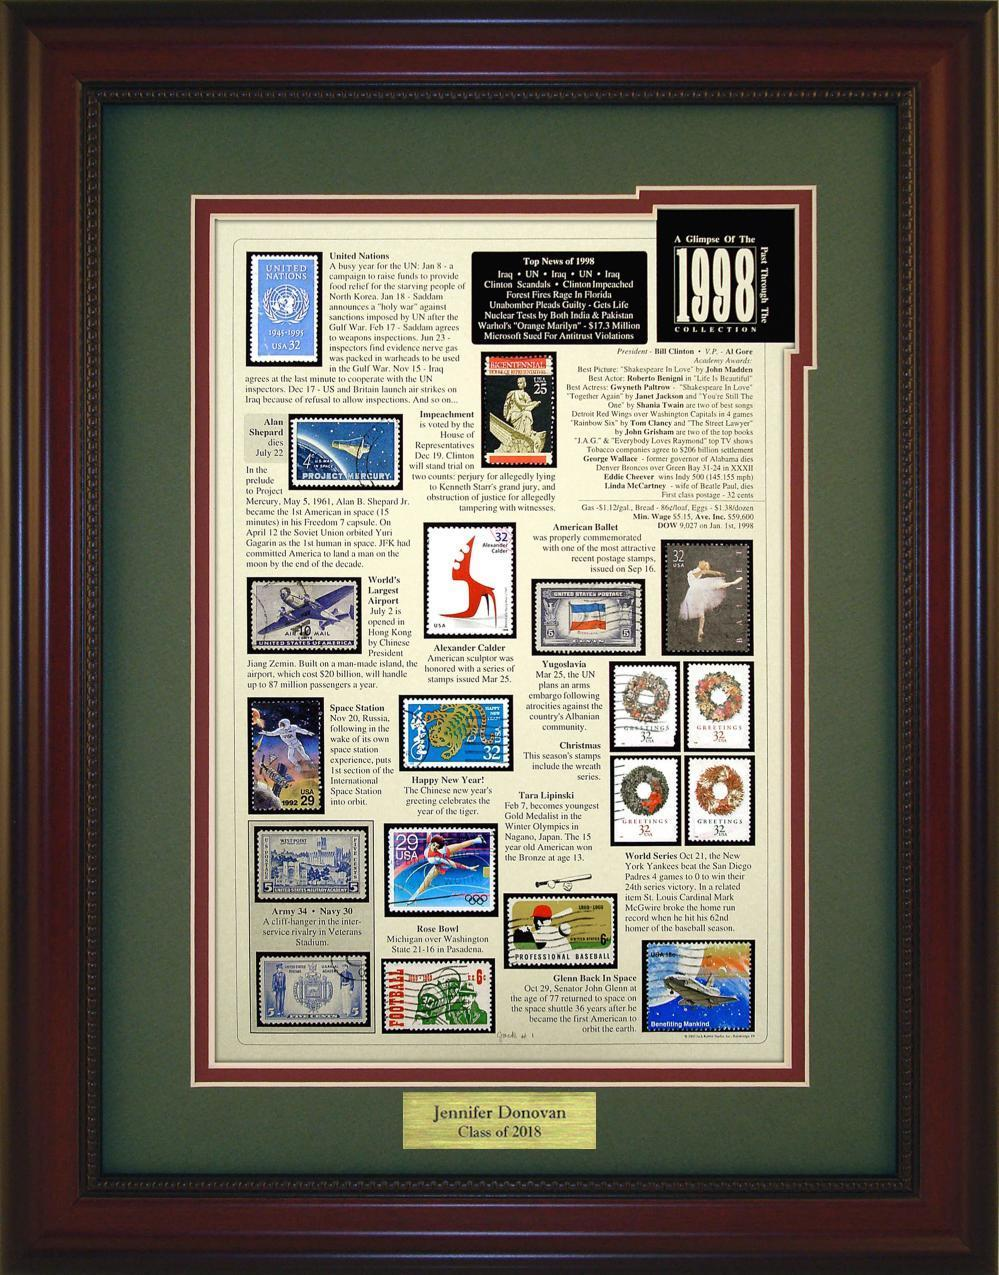 Year 1998 - Personalized Unique Framed Gift